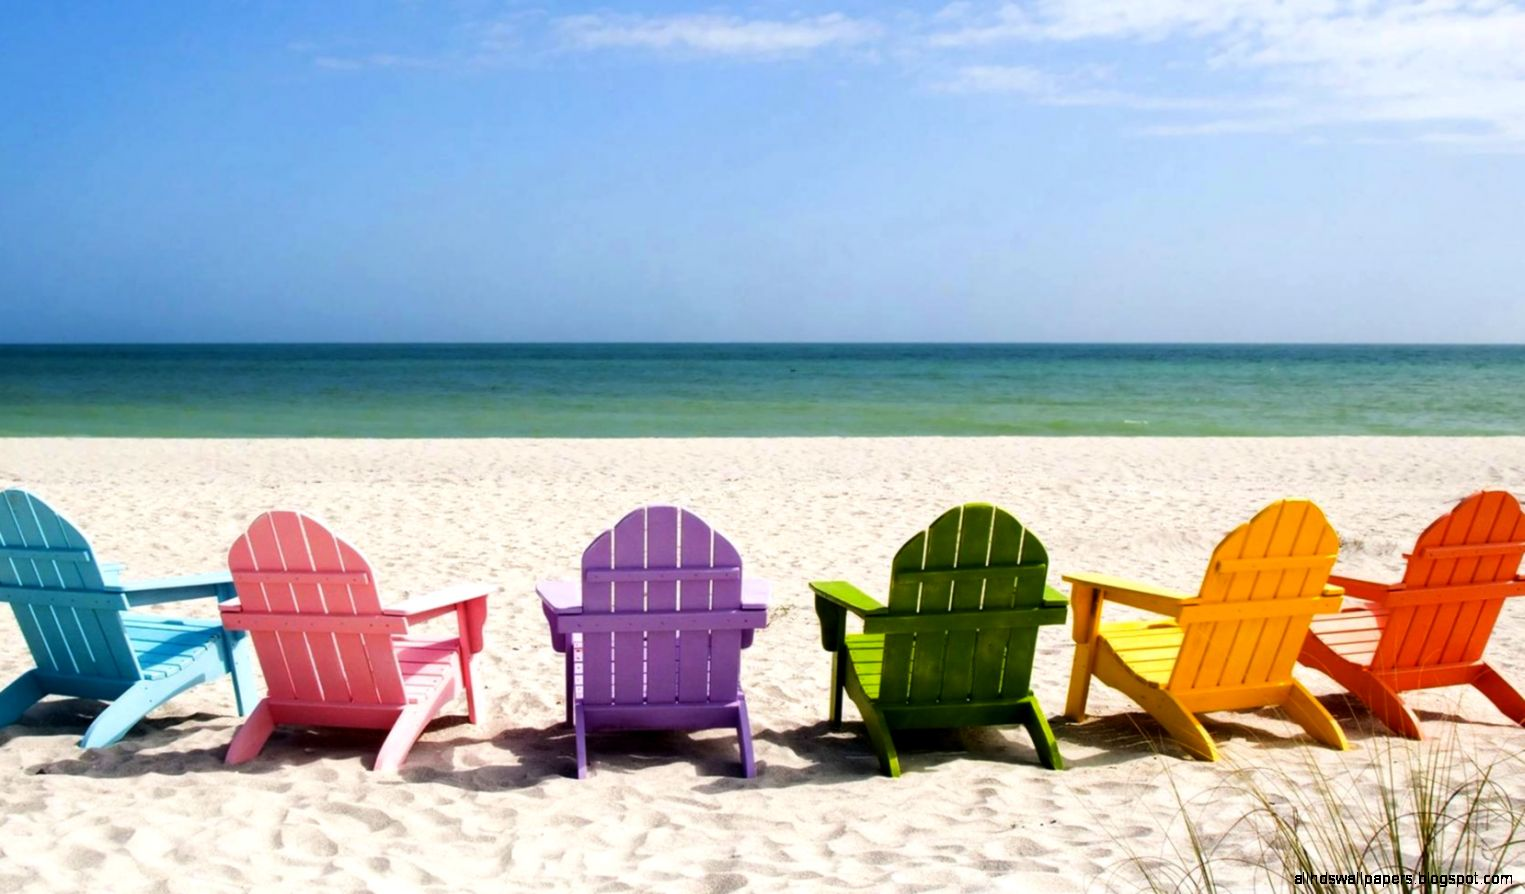 10 Reasons To Look Forward To The Summer